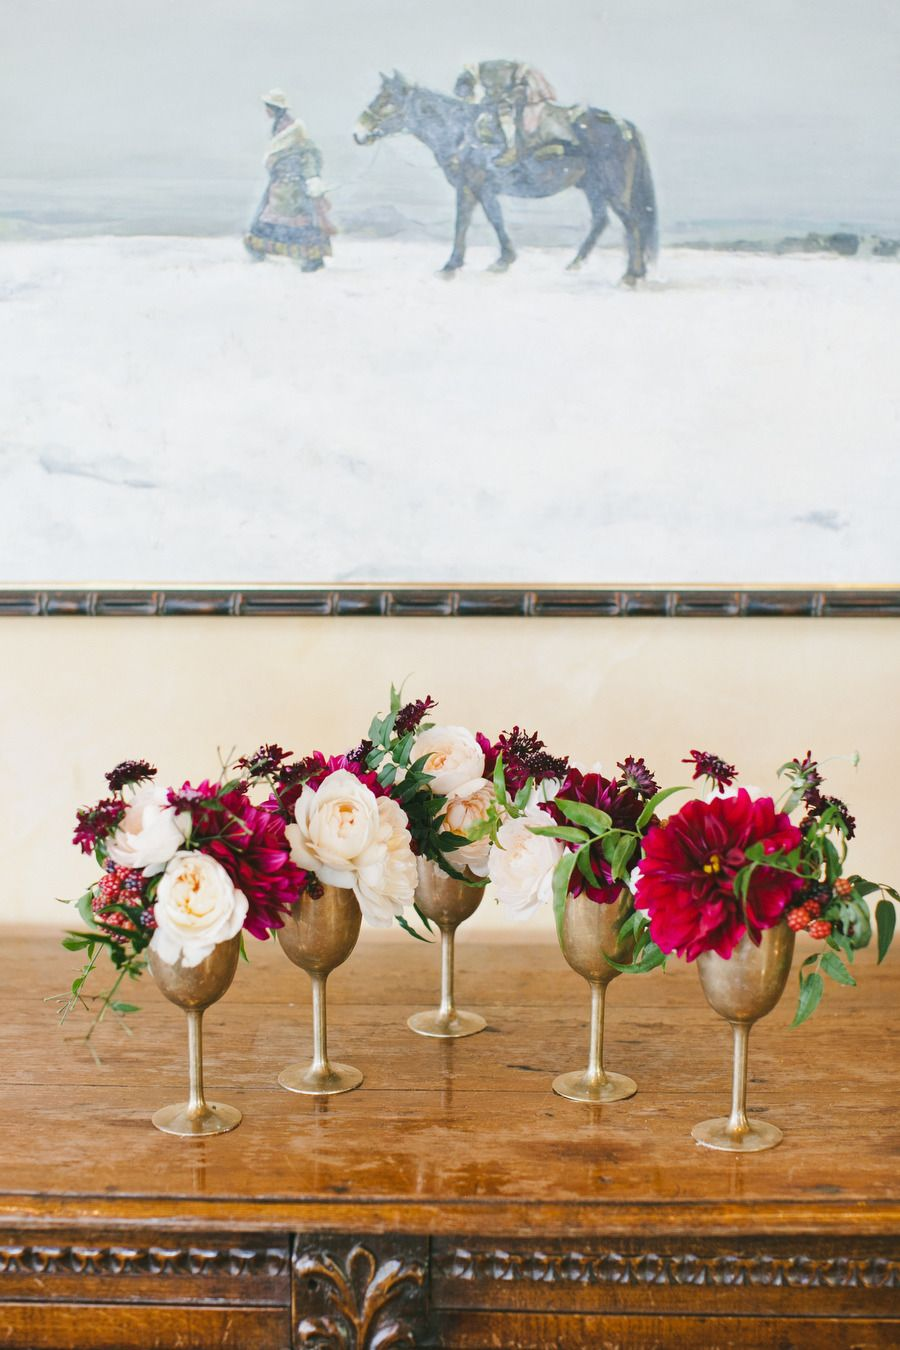 Floral arrangements in wine goblets. Photo by One Love Photography (via Style Me Pretty).